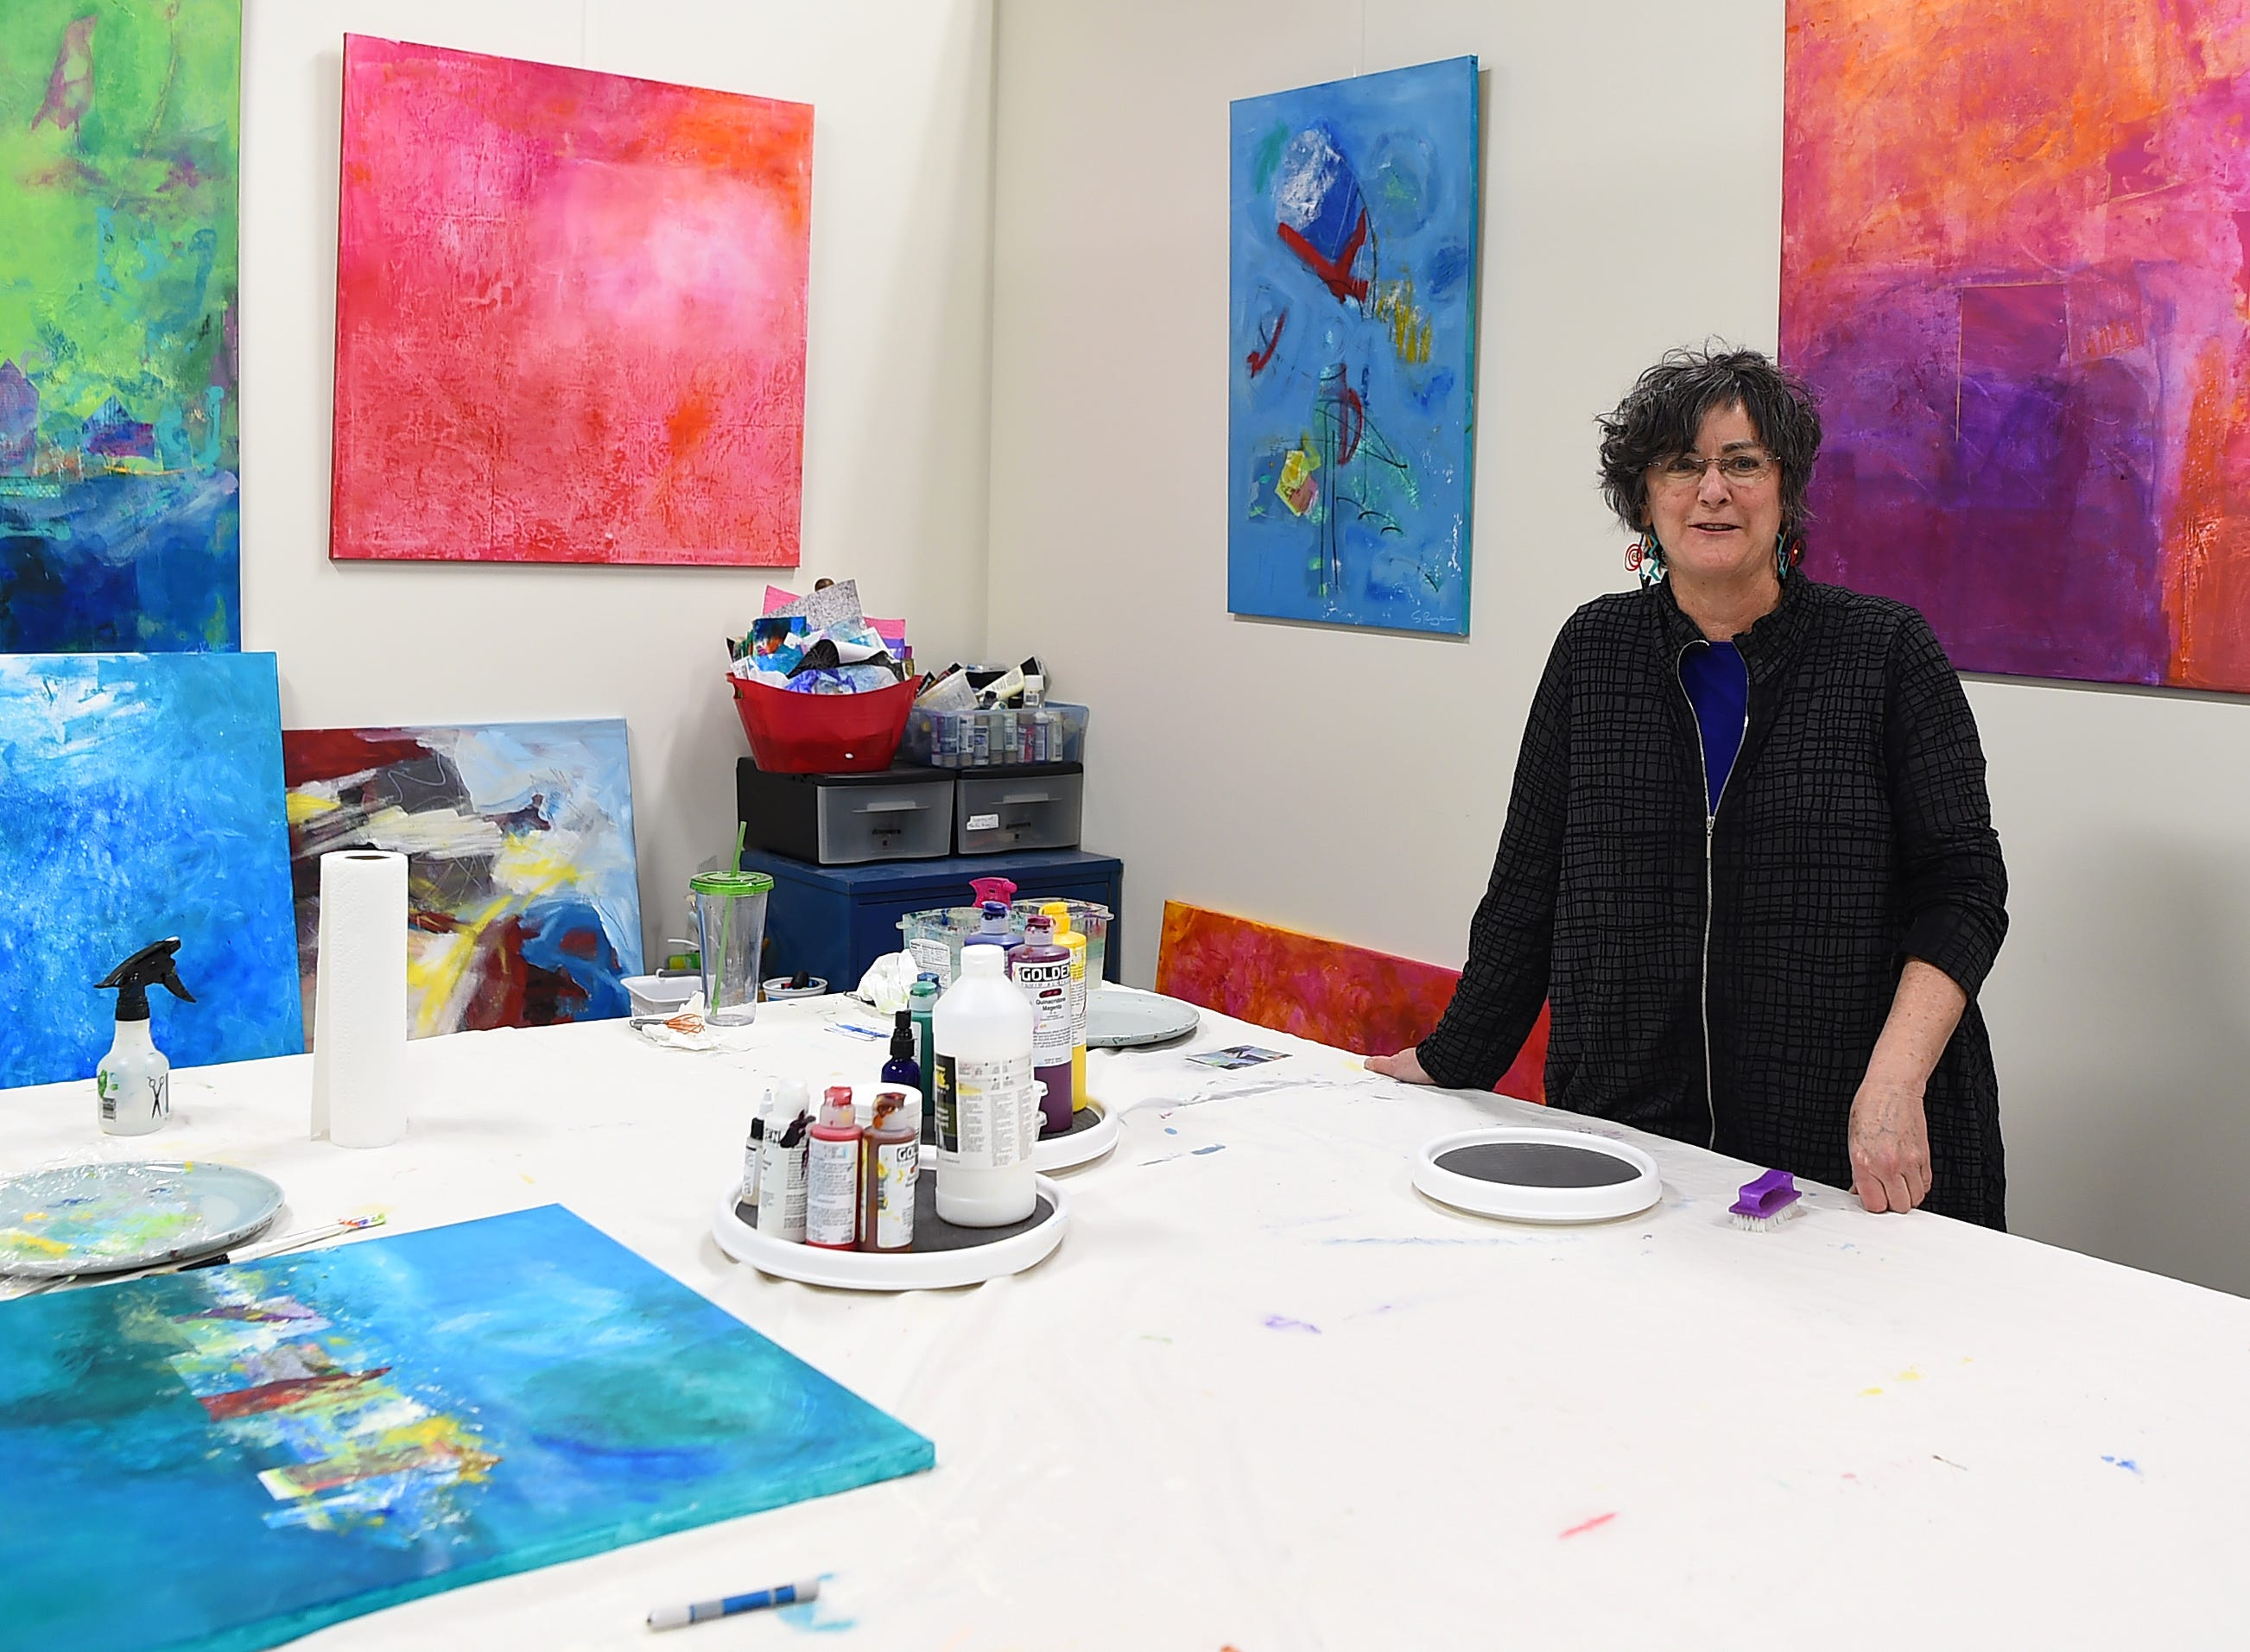 Sally Ryan in her Artist Alley studio. Located on Danby Road in Ithaca, Artist's Alley at South Hill houses a variety of art studios in what was once an industrial space.